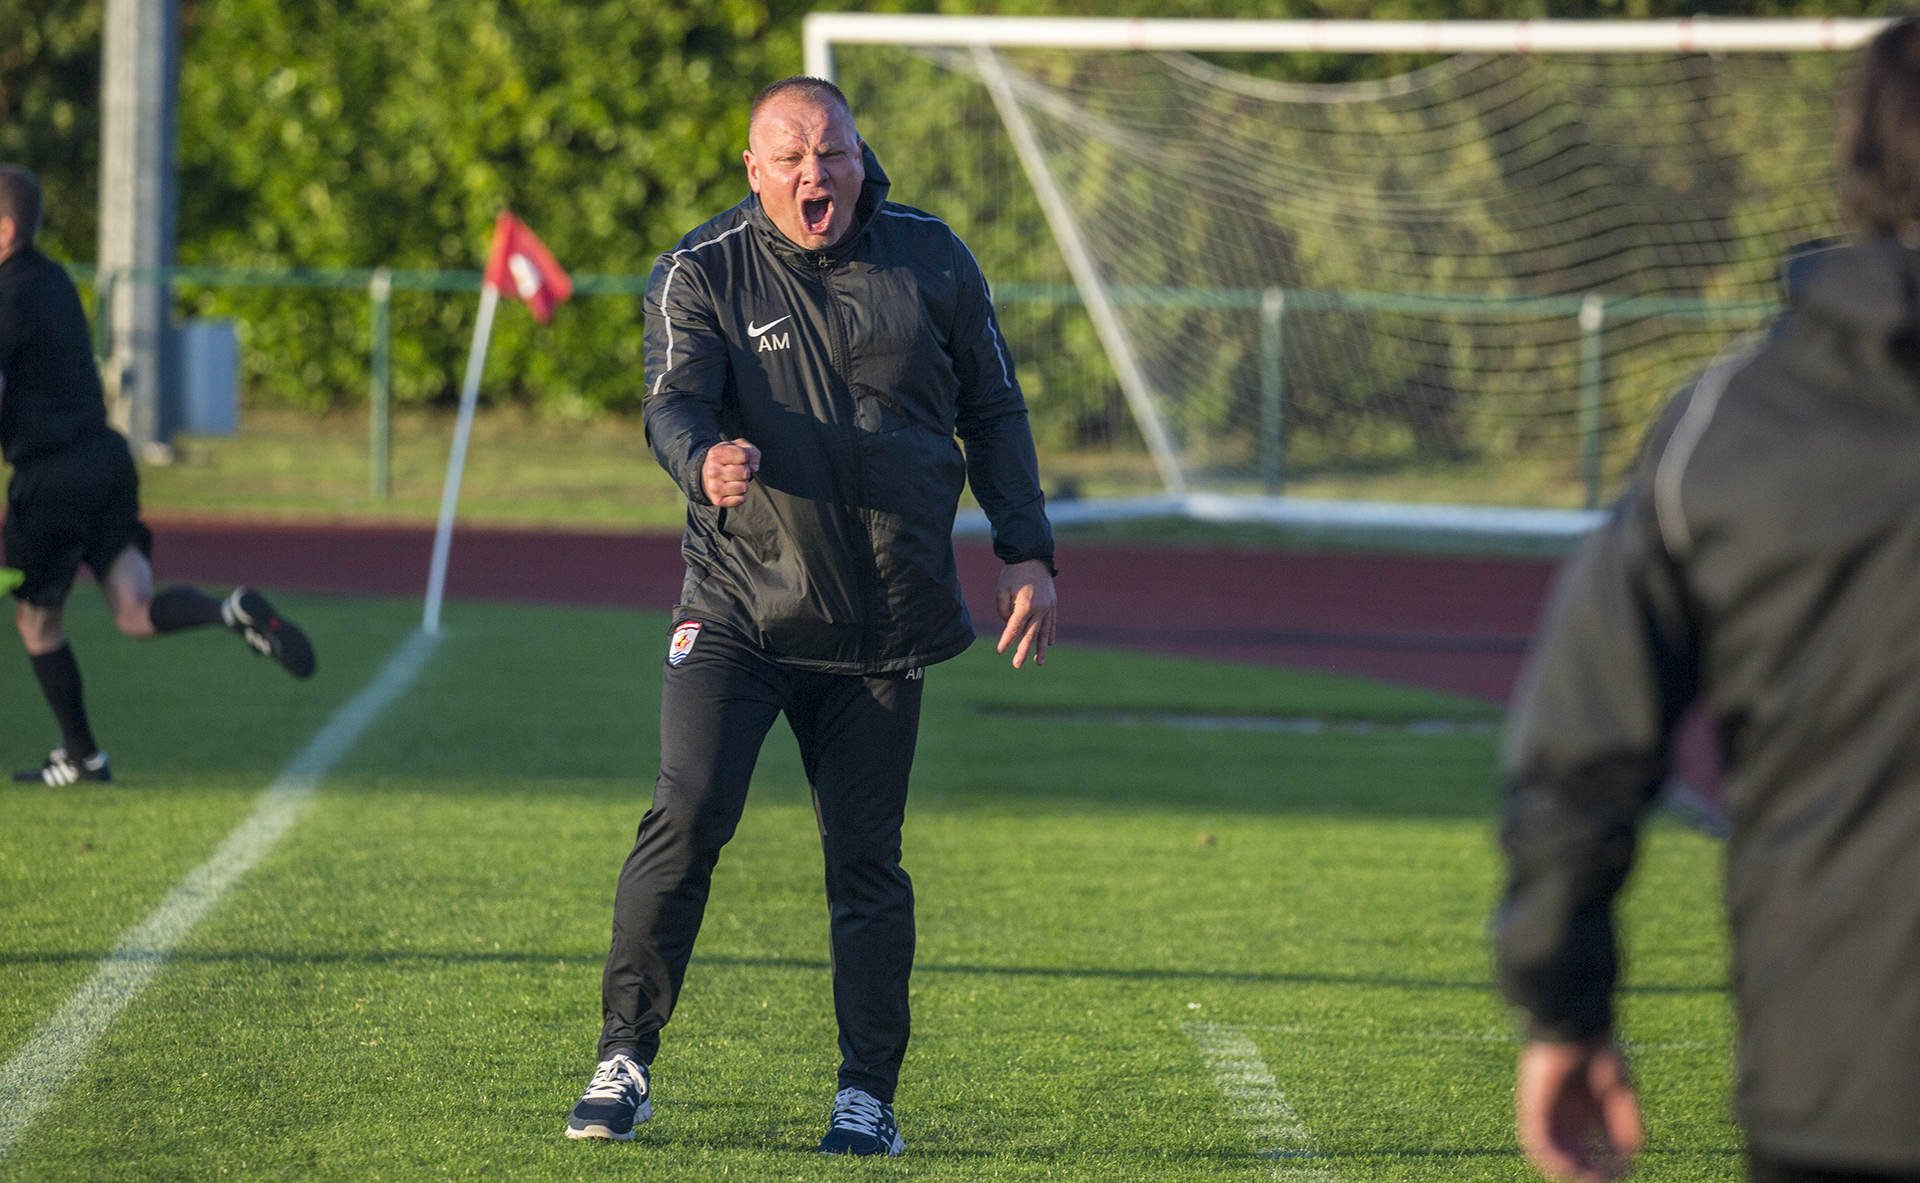 Andy Morrison celebrates at full time | © NCM Media